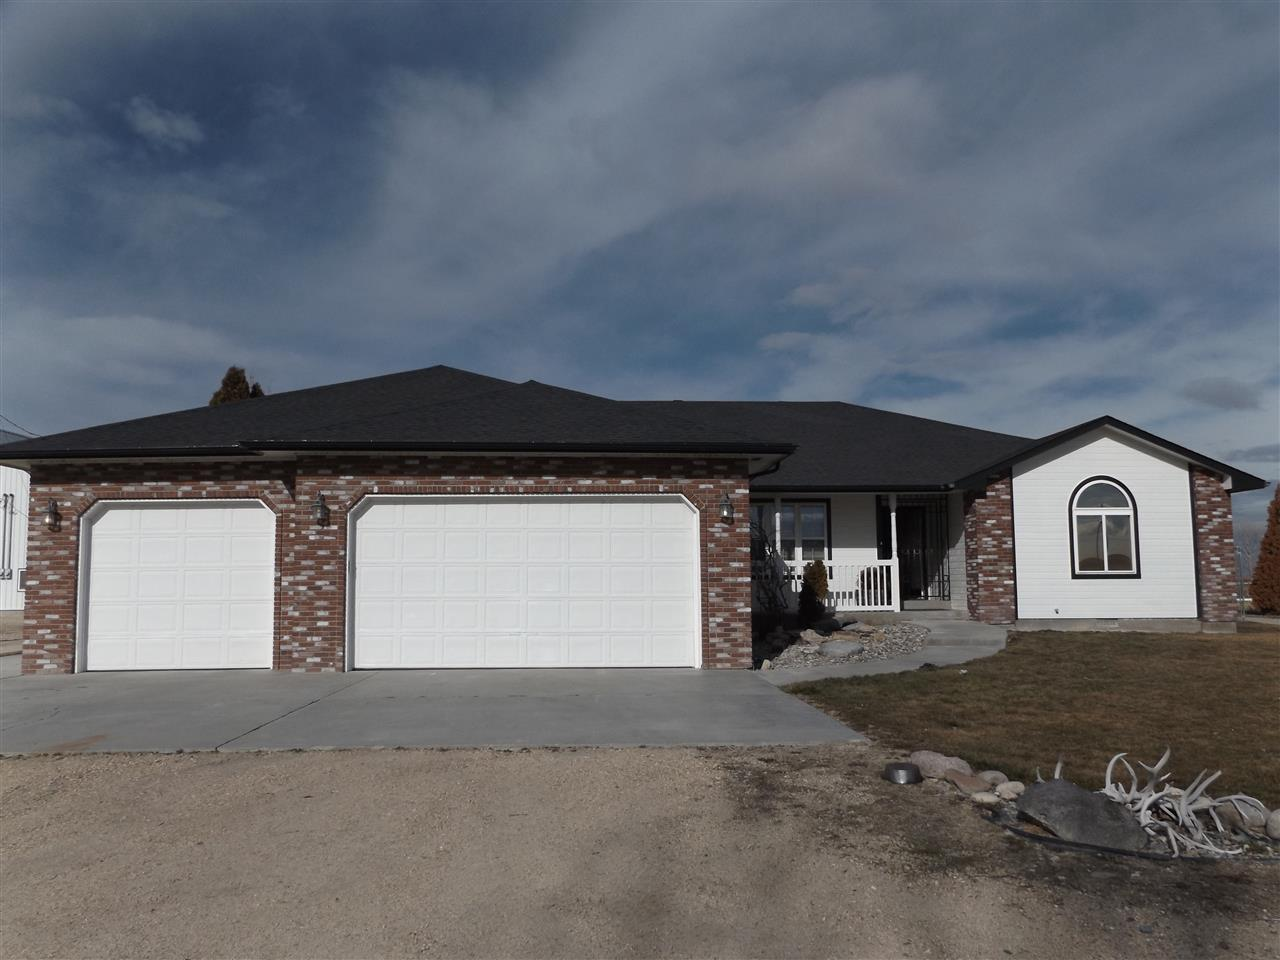 Single Family Home for Sale at 8624 Melmont Road 8624 Melmont Road Melba, Idaho 83641